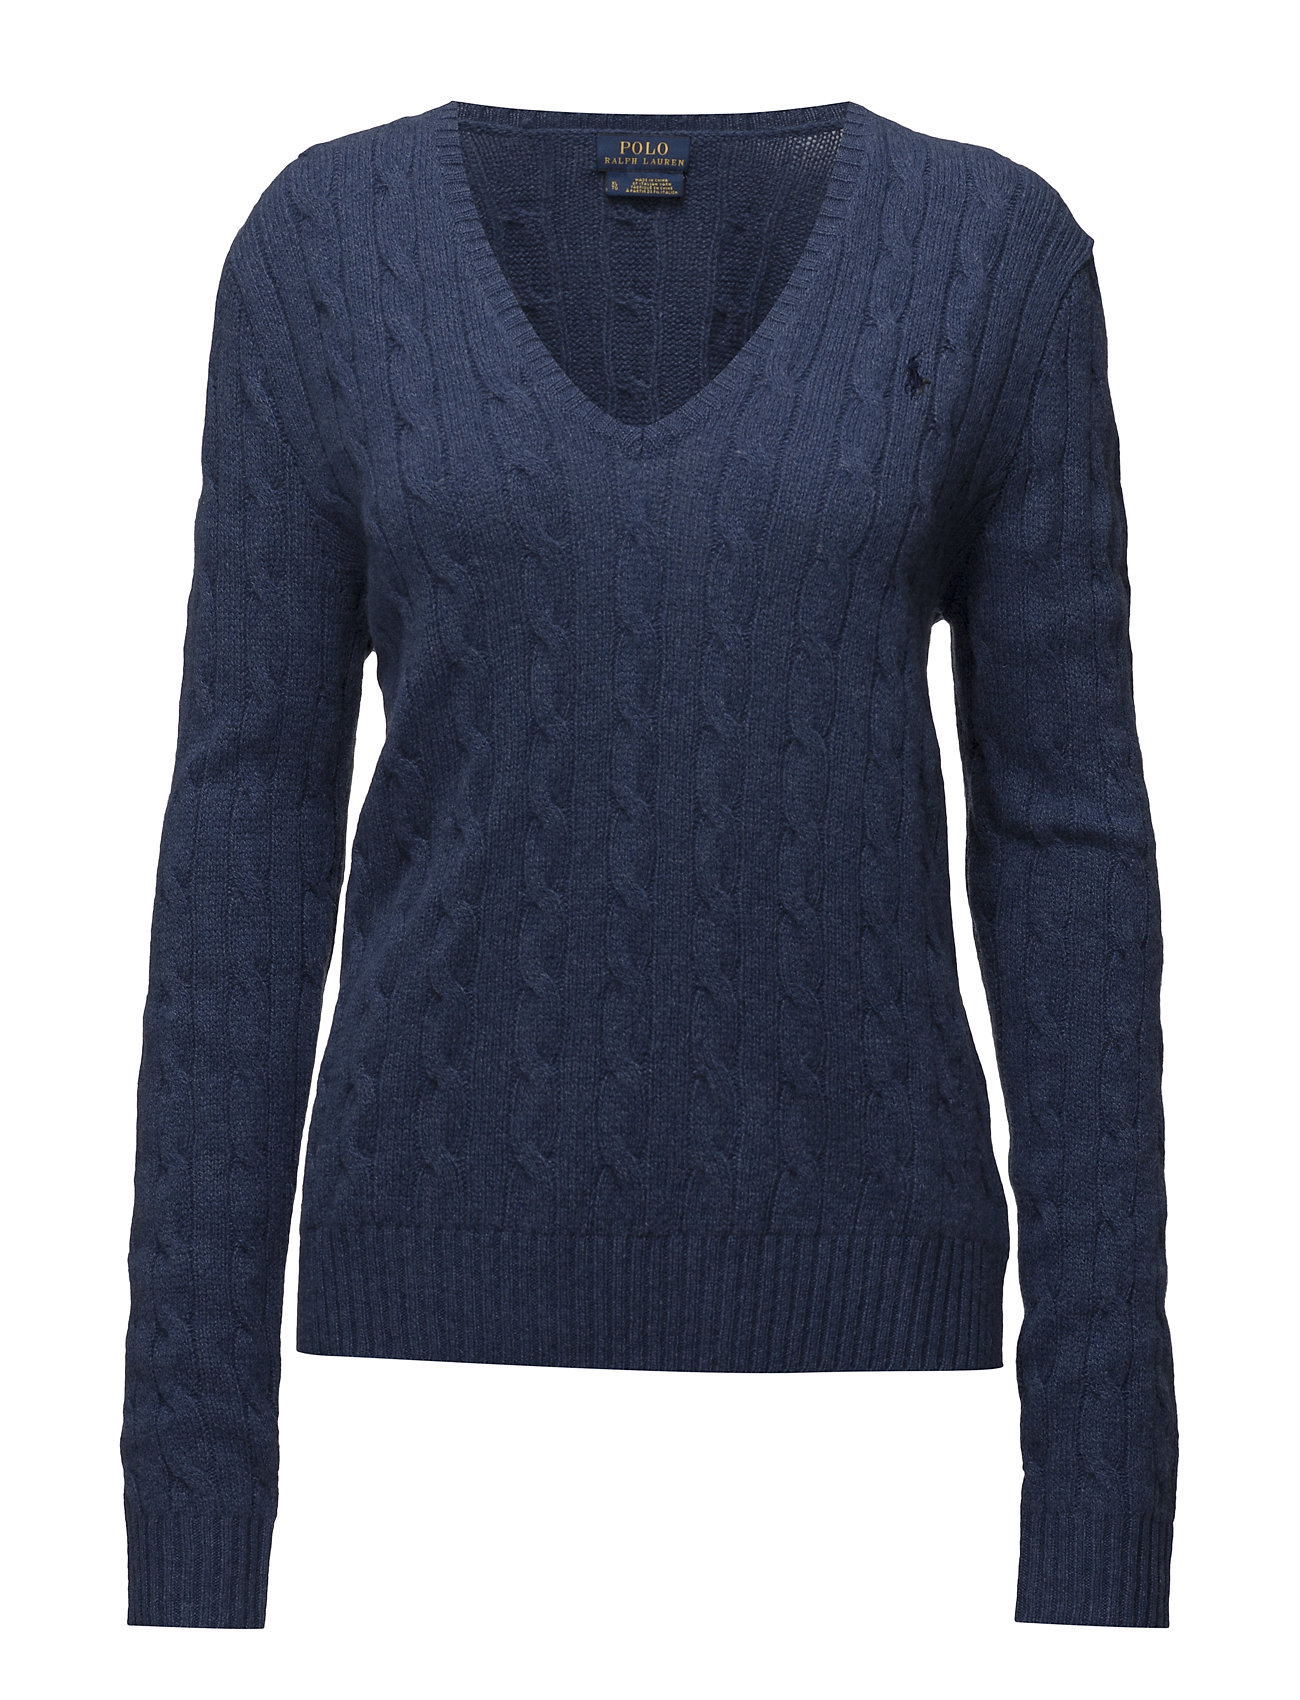 Wool-blend Cable-knit Sweater (Shale Blue Heathe) (£77.35) - Polo ...